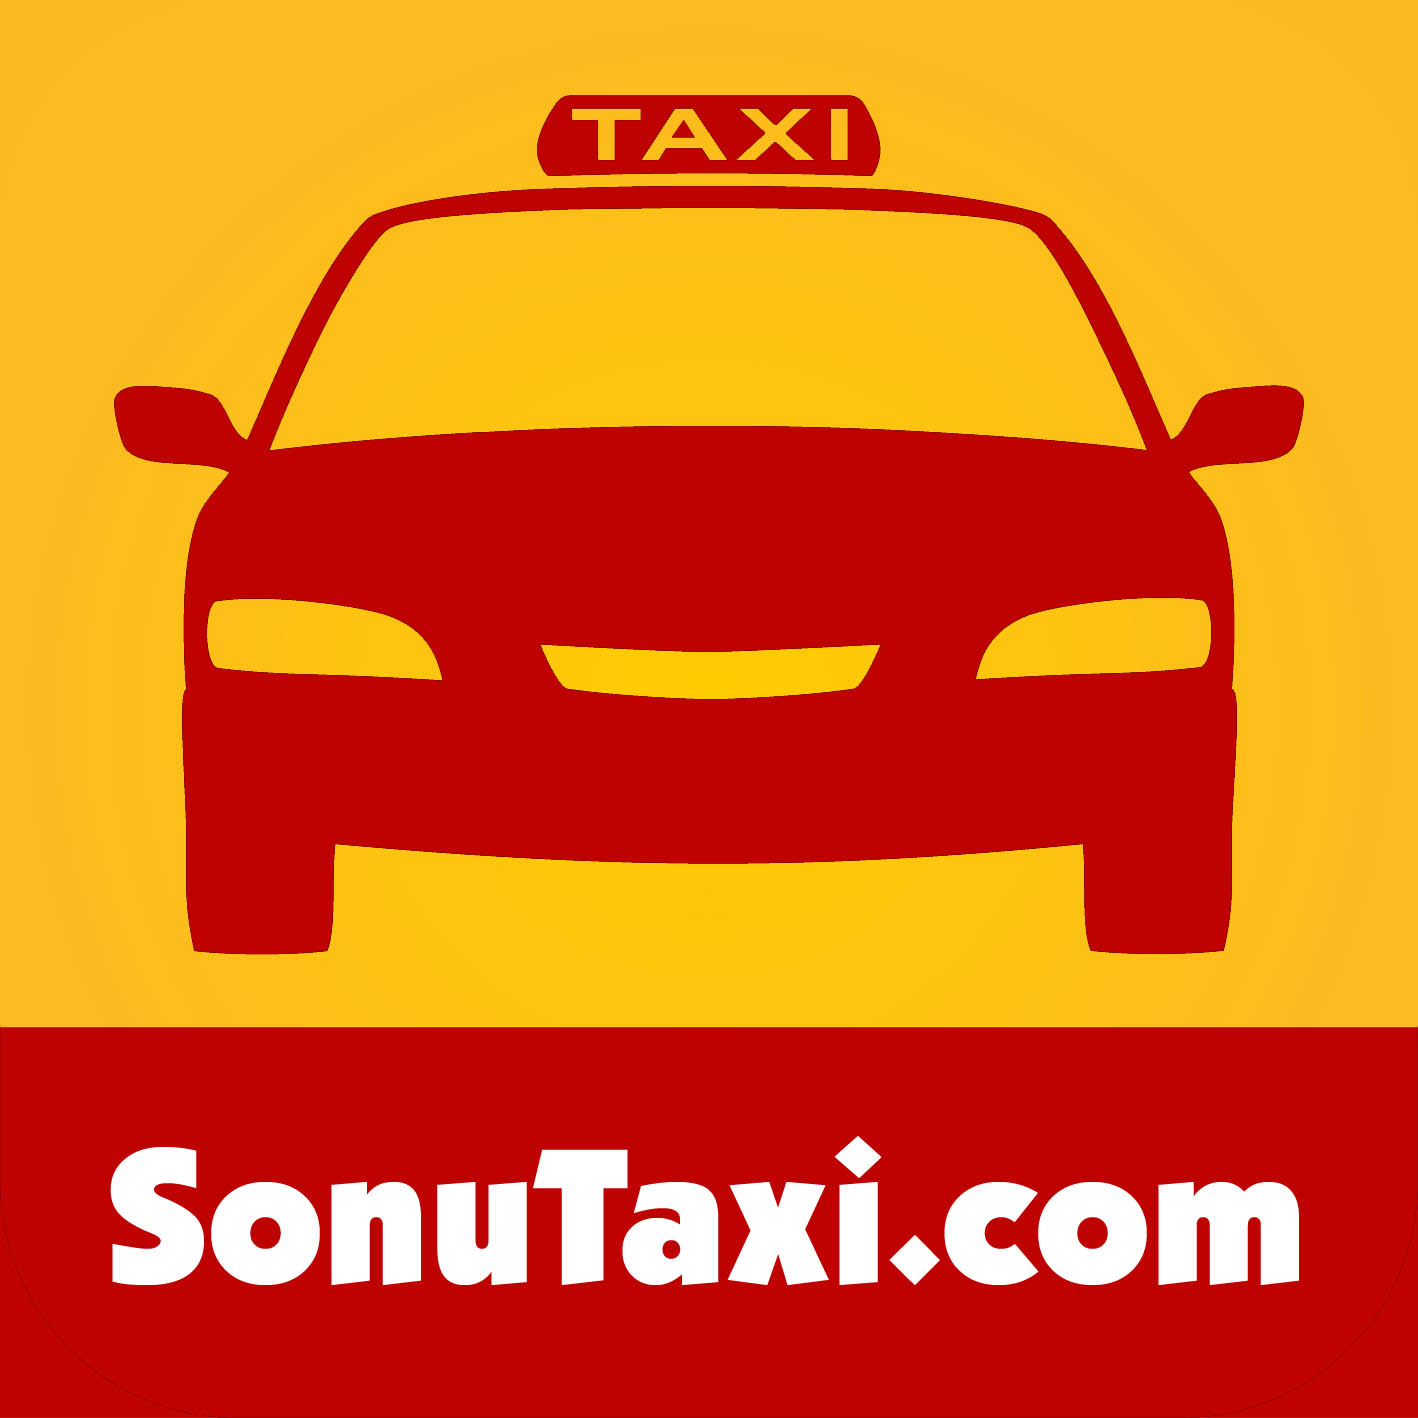 Best Taxi Services in Delhi, Chandigarh, Manali, Amritsar INDIA. 24 hrs